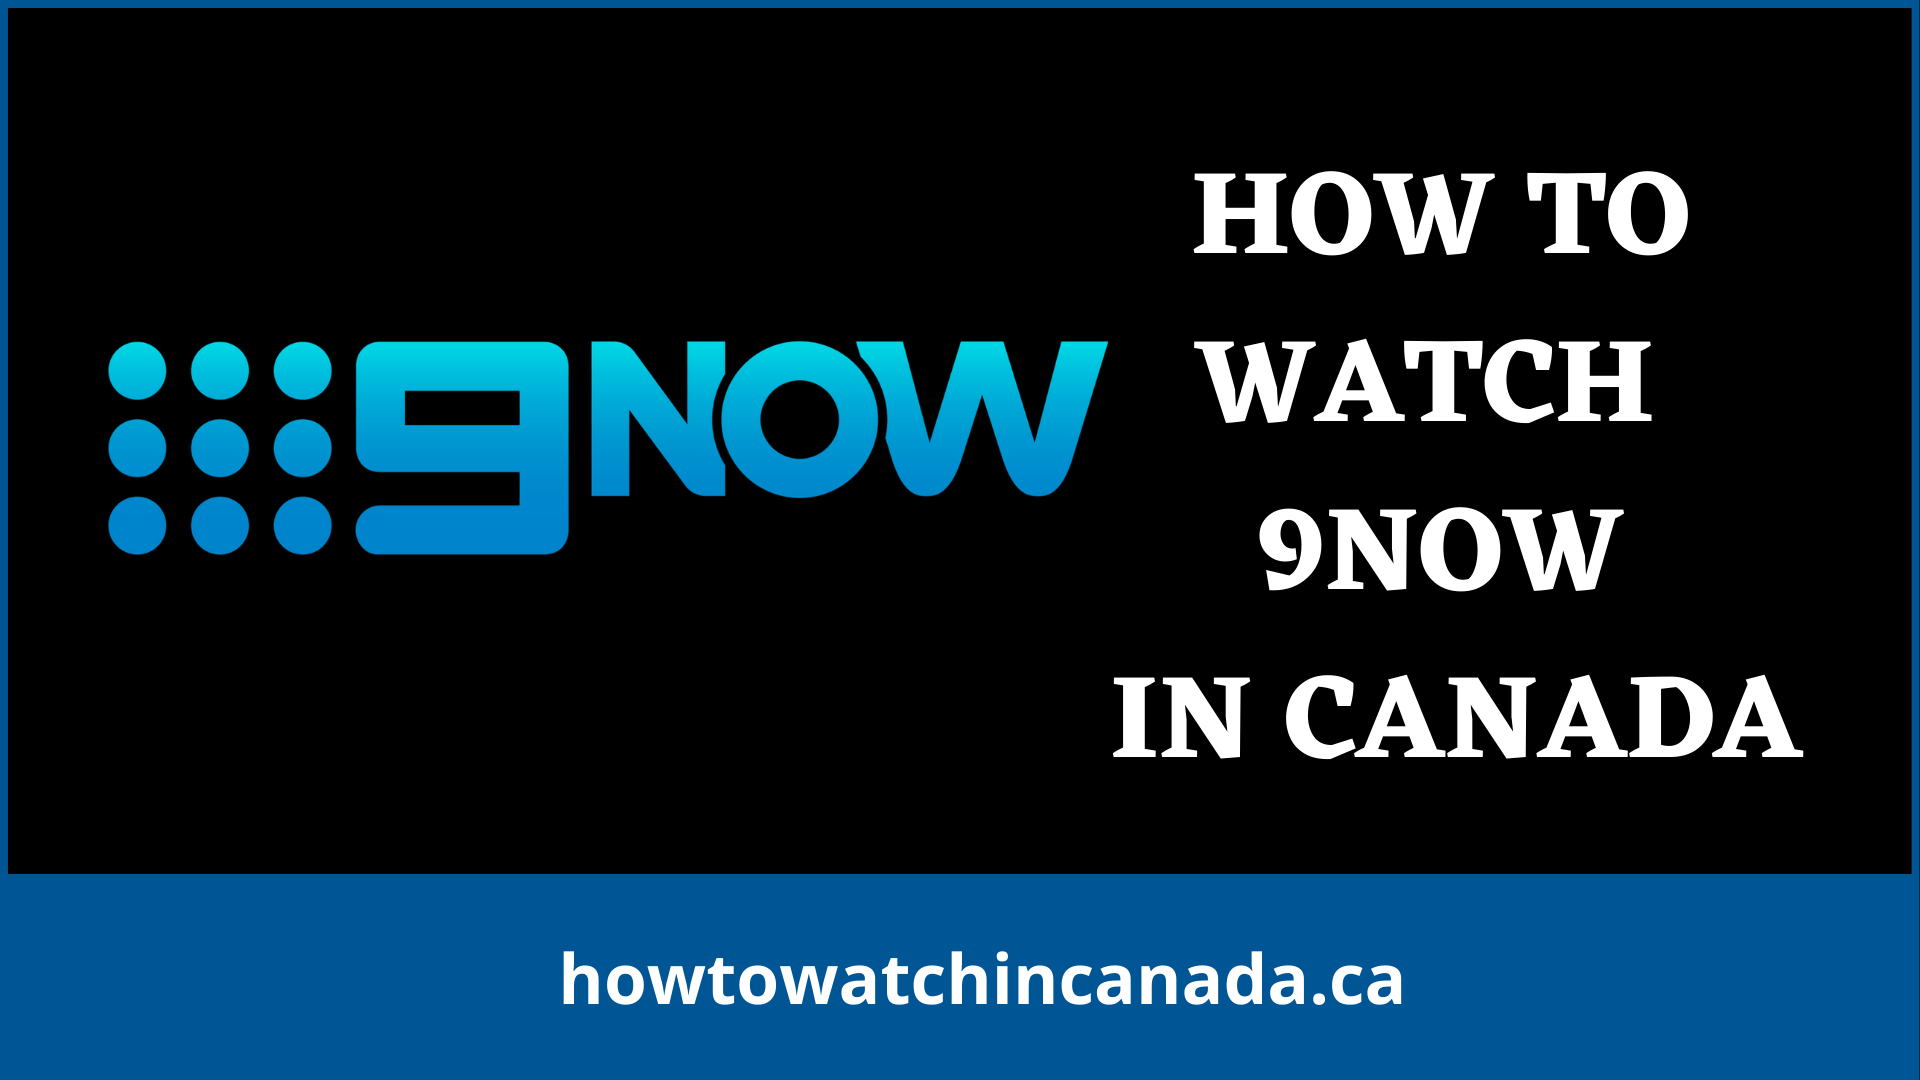 9now-feat-how-to-watch-in-canada